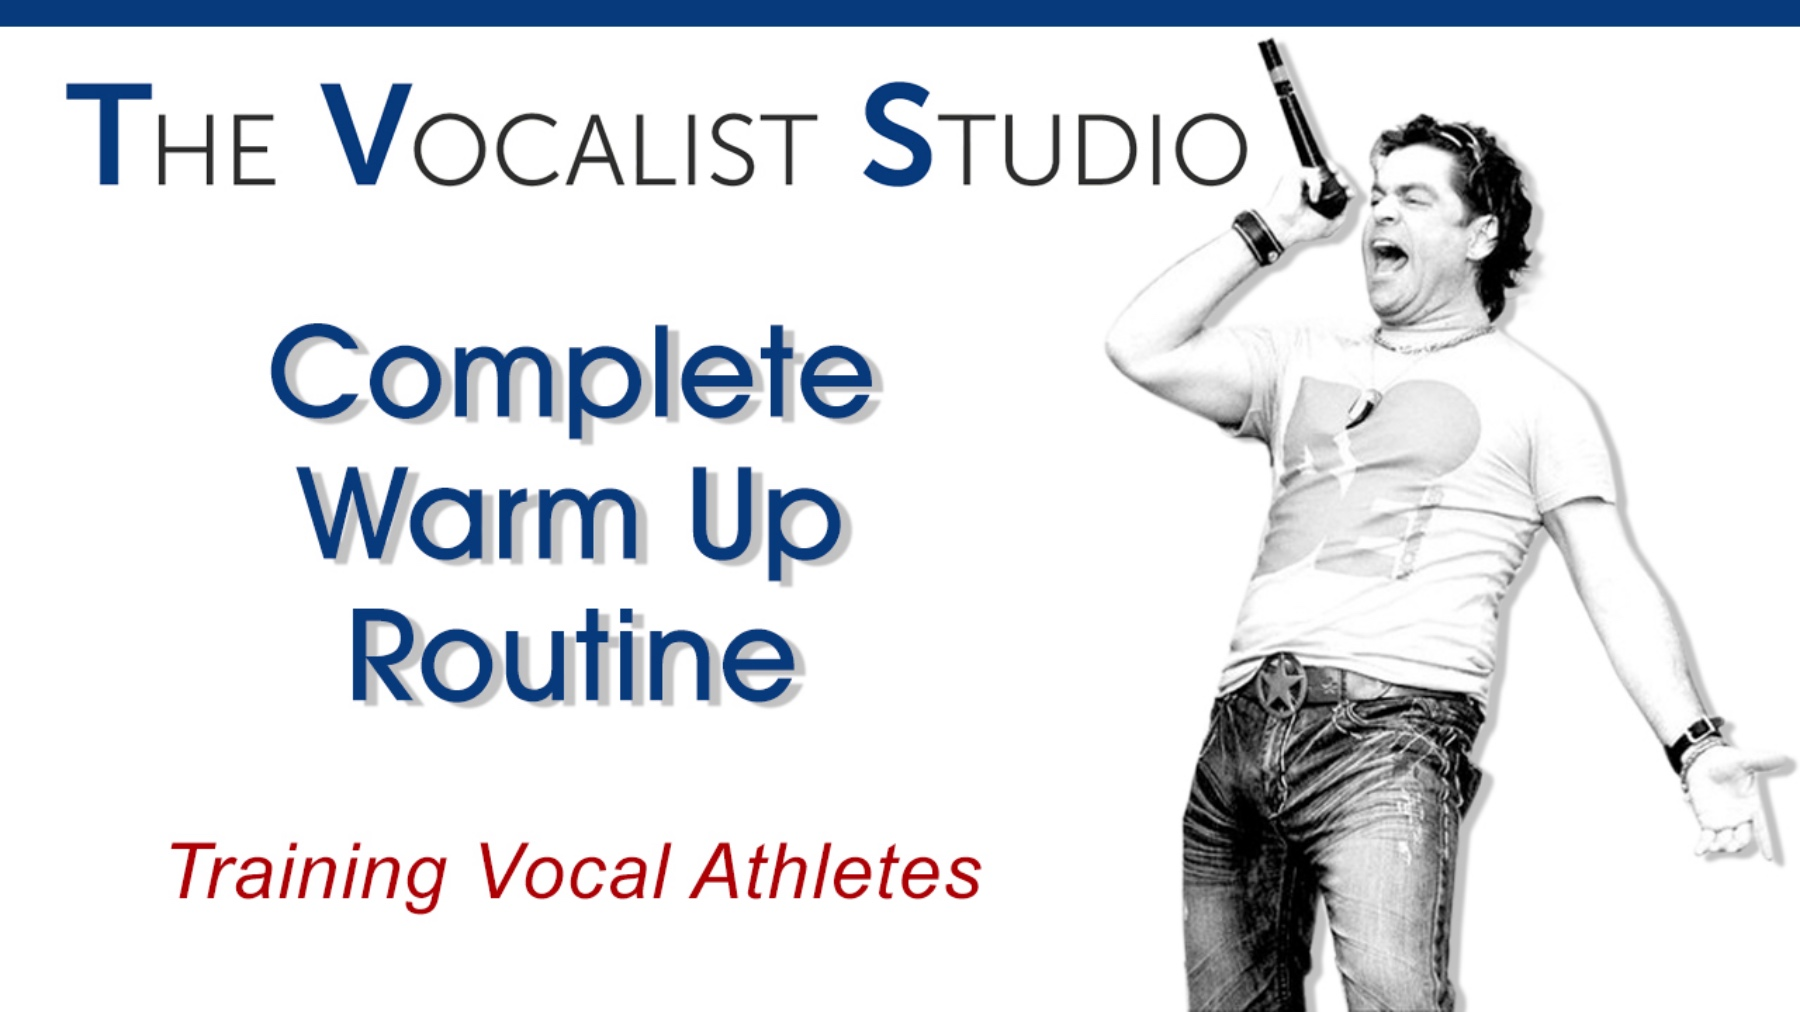 VOCAL WARM UPS: Your Complete Vocal Warm Up Program